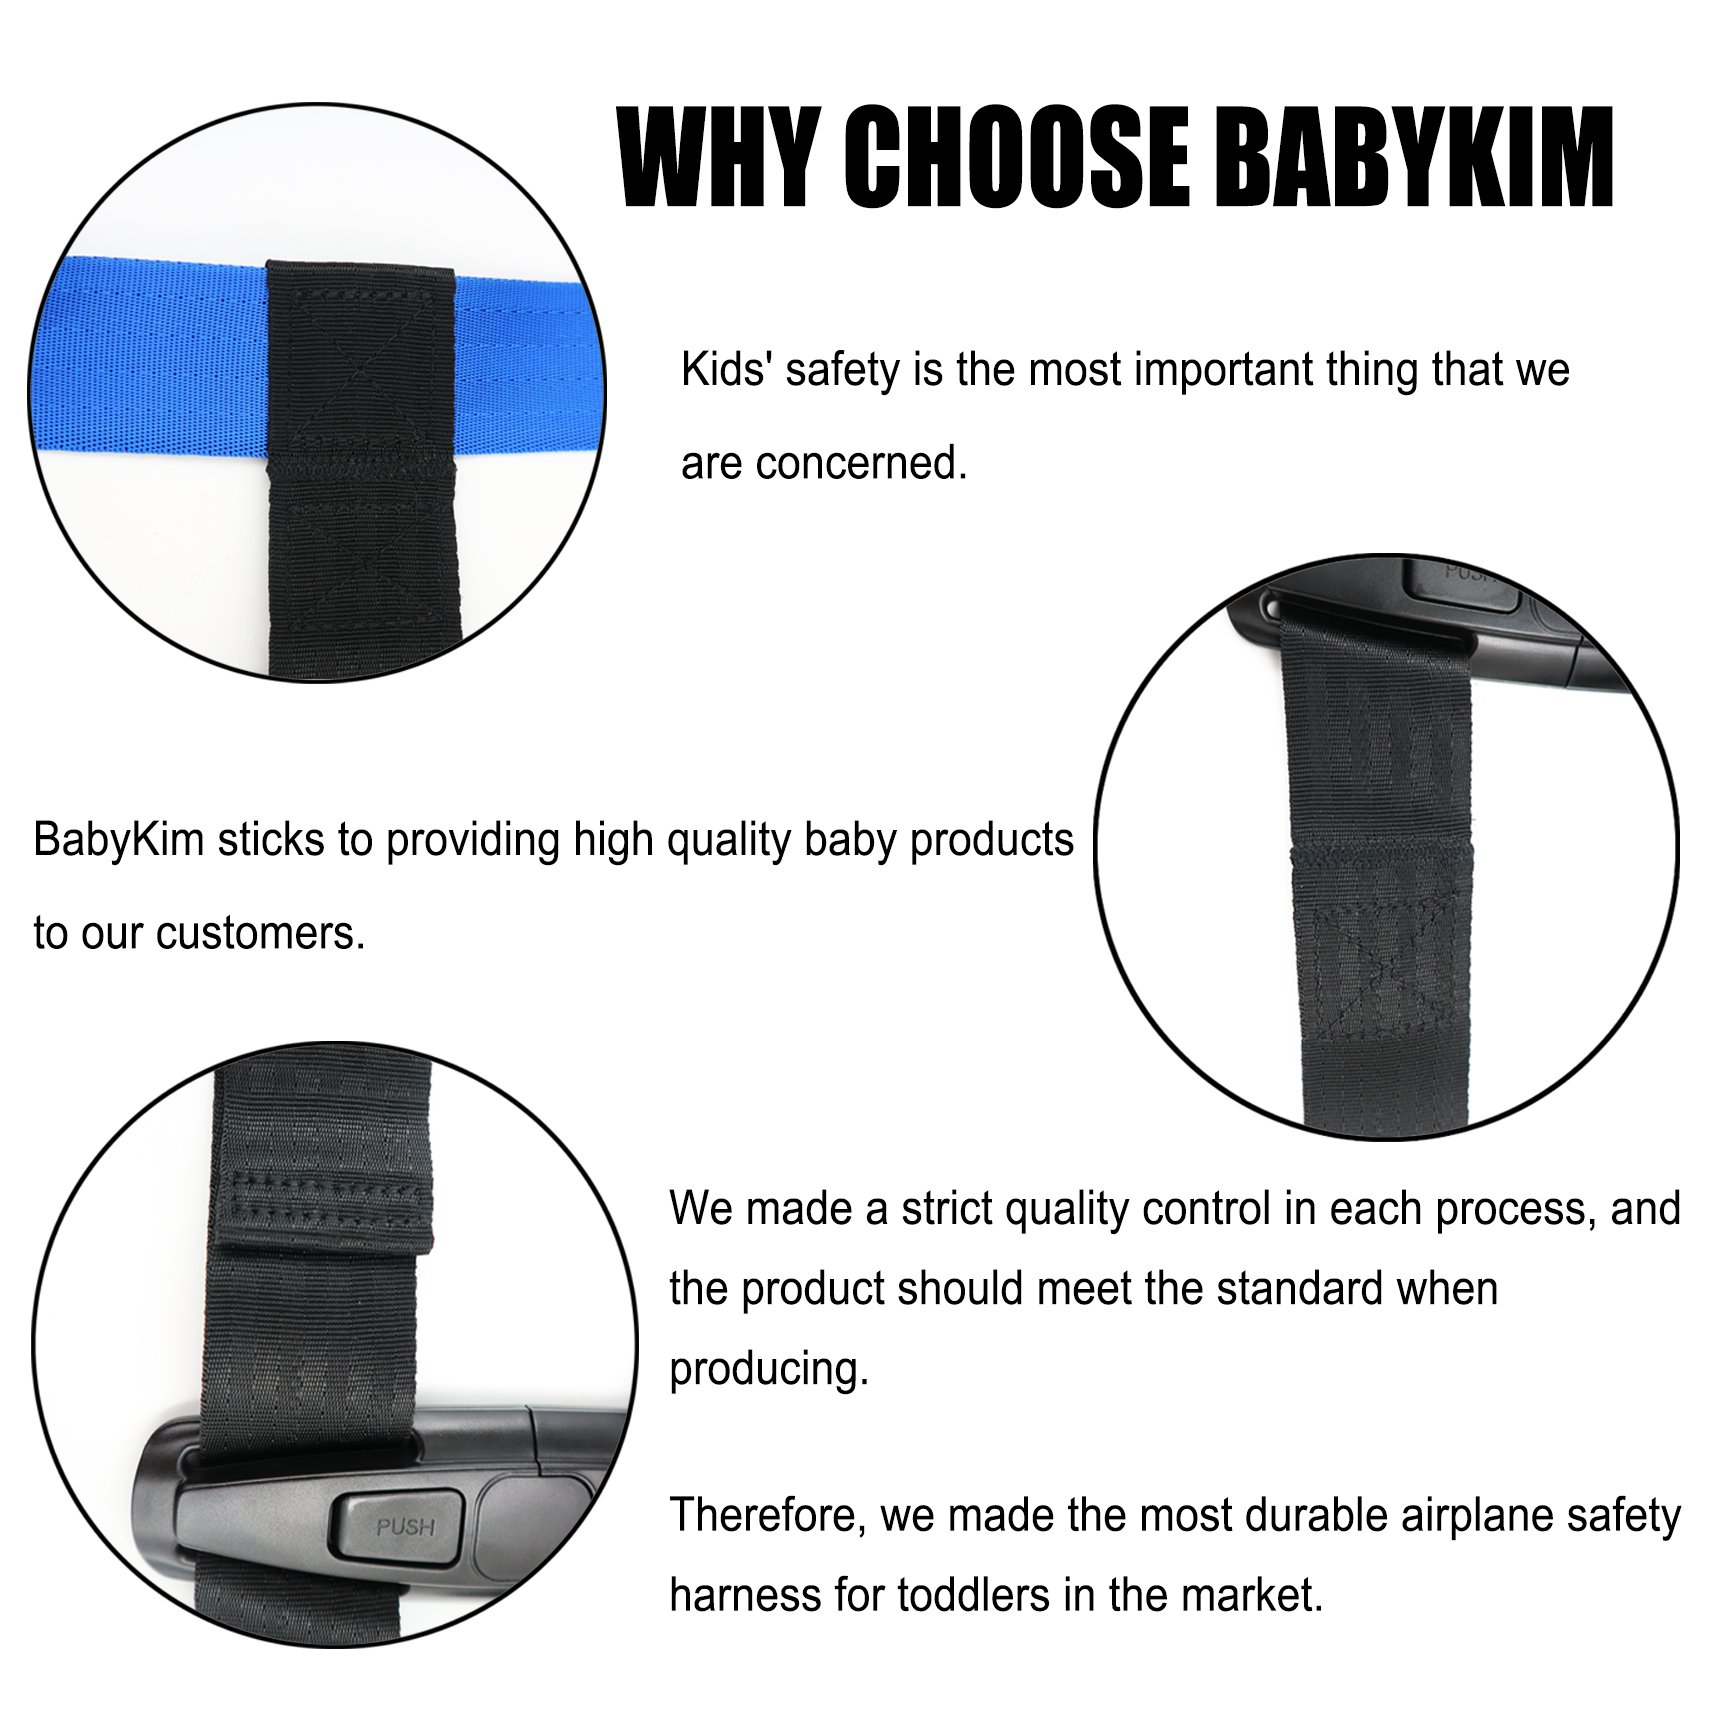 Children Care Harness Safety Airplane Restraint System with Non-Slip Drying Mat For Kids/Toddlers/Children by BabyKim by BabyKim (Image #3)